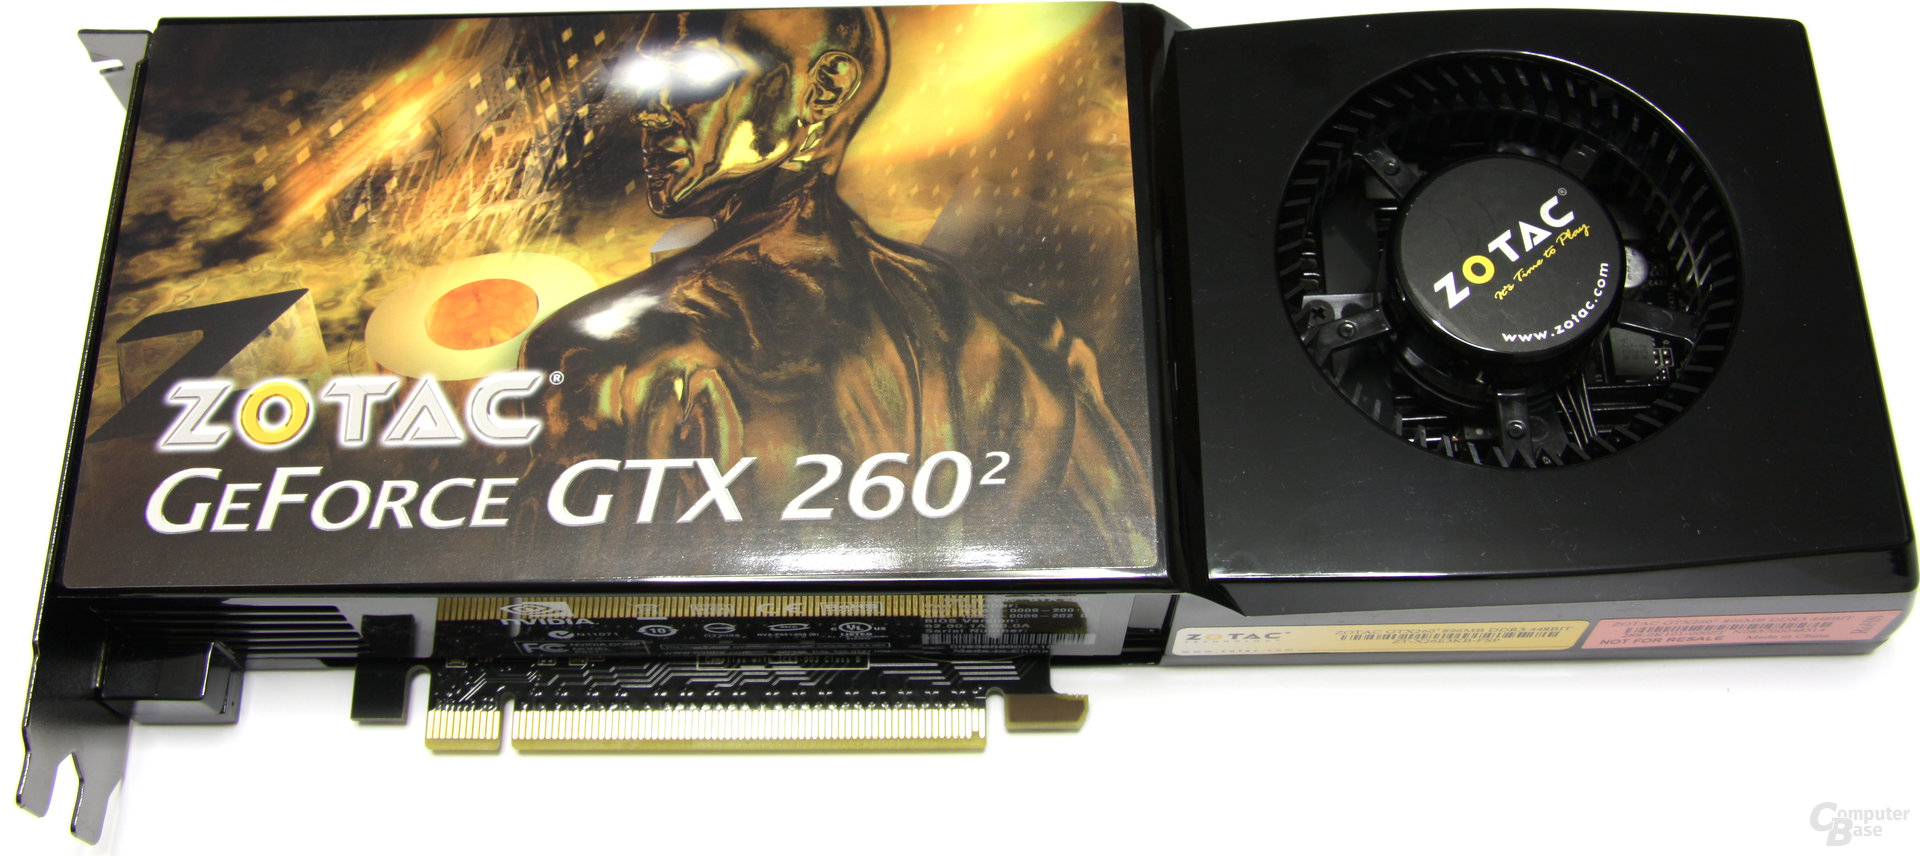 Zotac GeForce GTX 260²